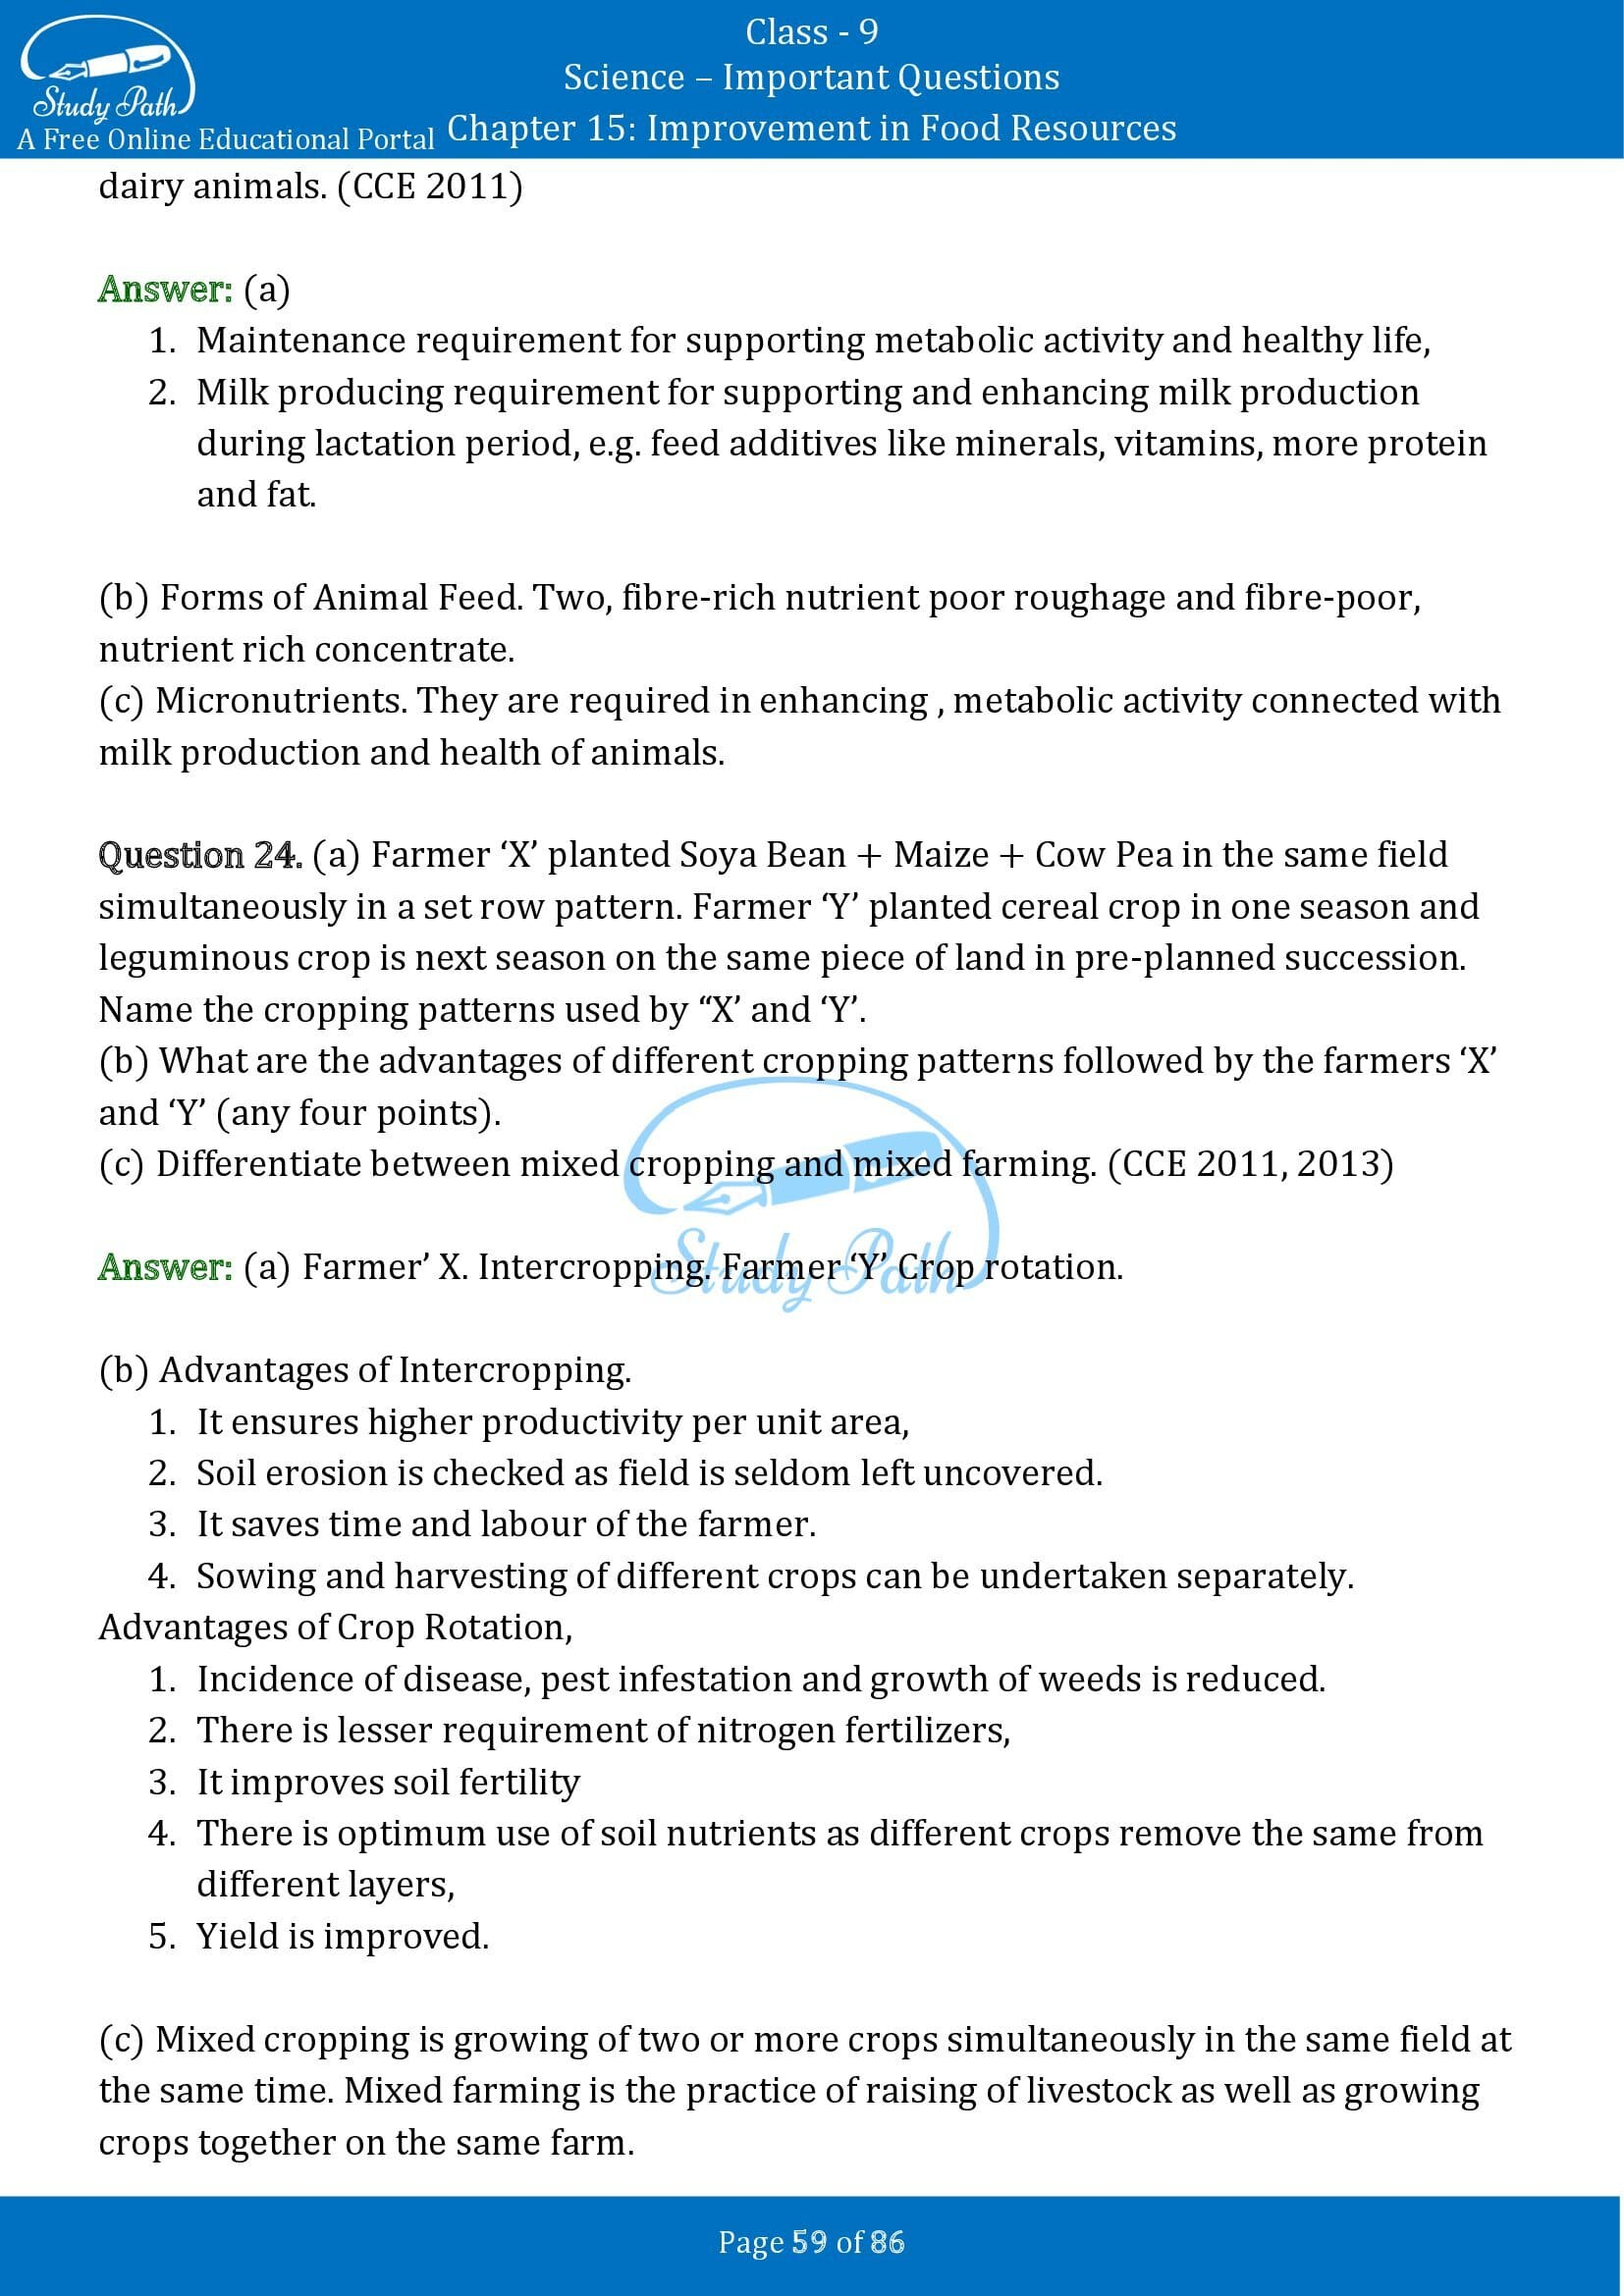 Important Questions for Class 9 Science Chapter 15 Improvement in Food Resources 00059